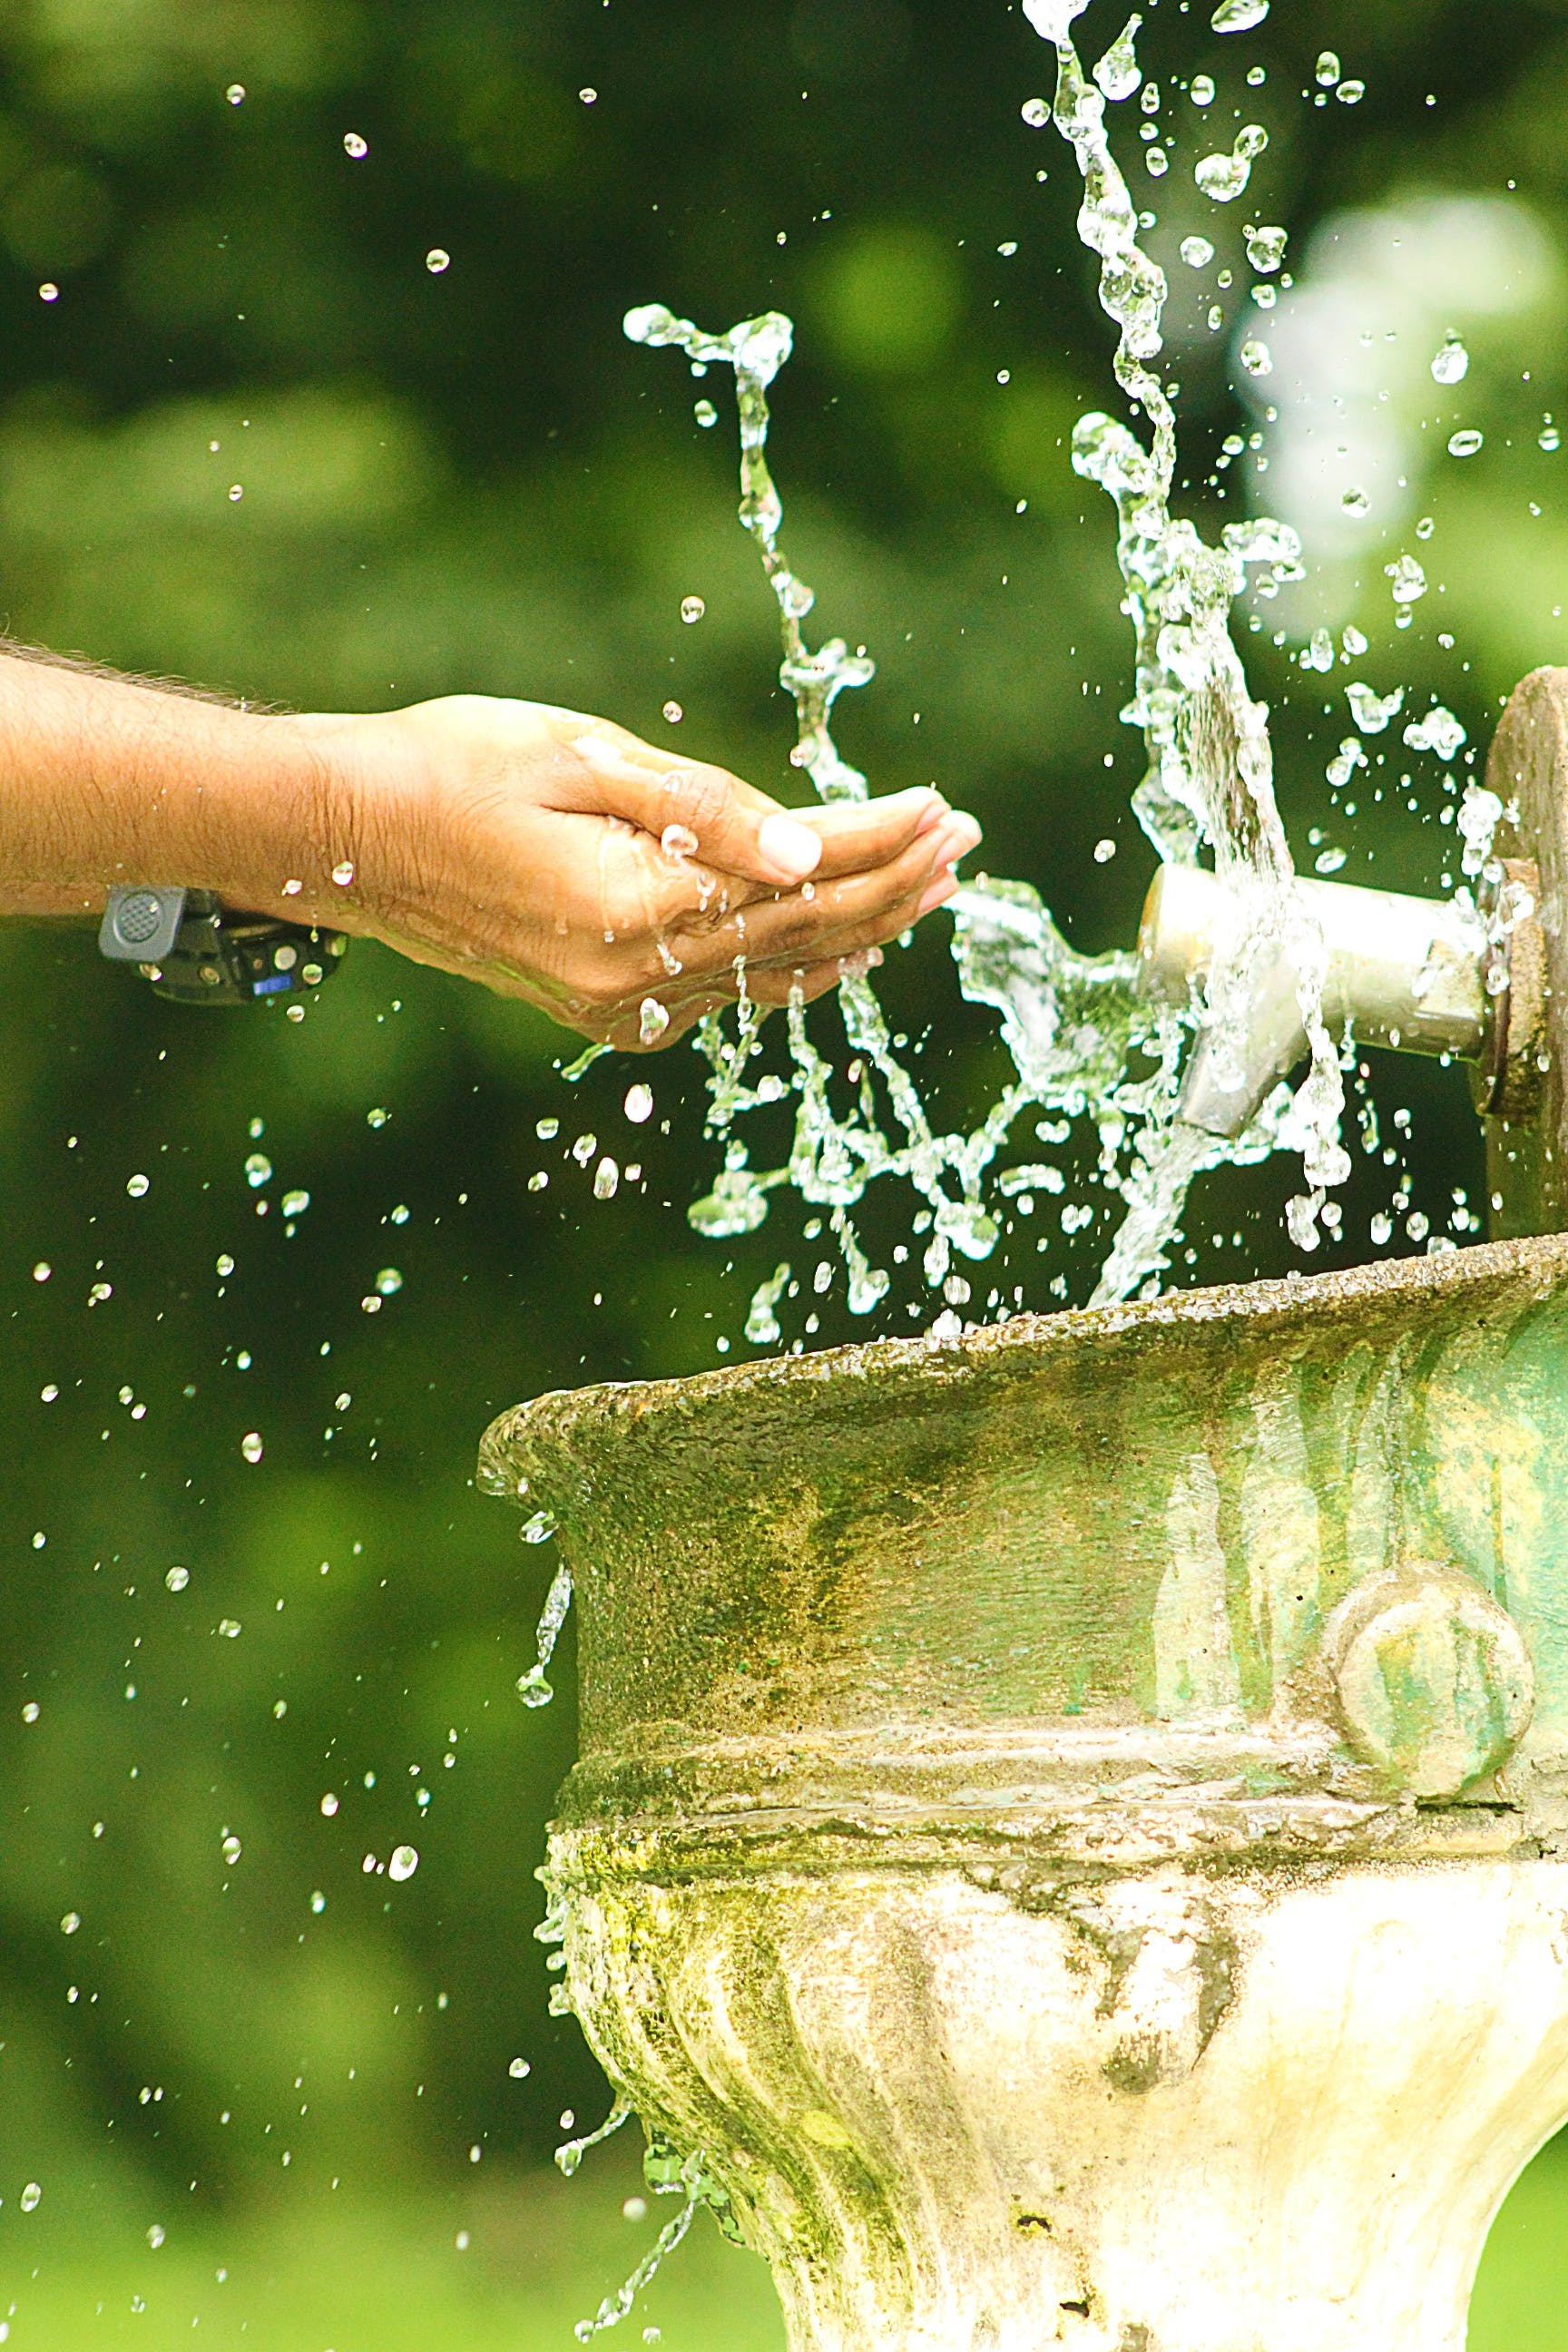 Selective Focus Photography of Person Washing Hand on Water Fountain